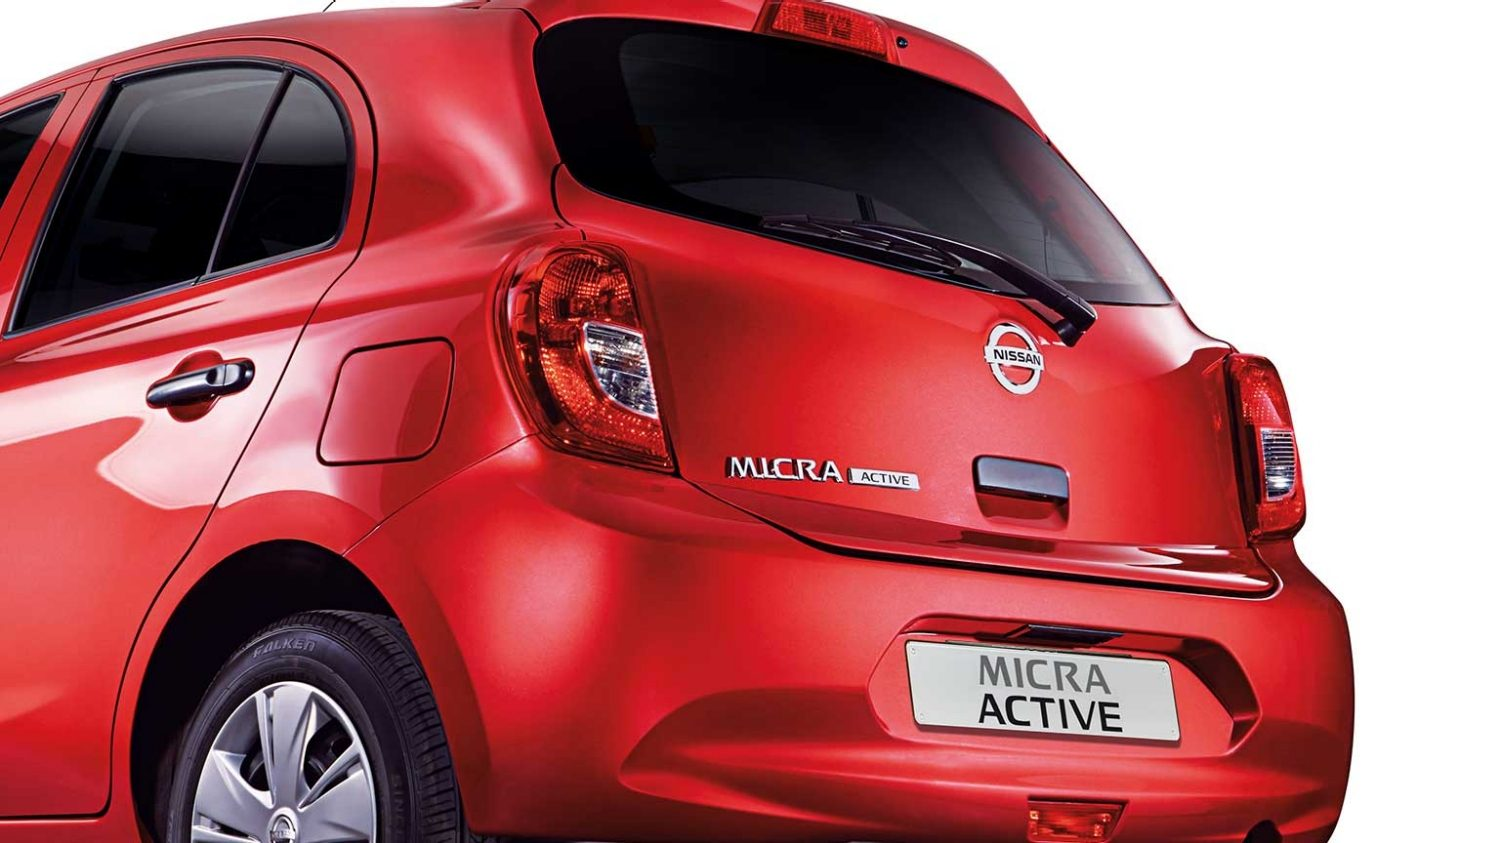 MICRA ACTIVE tailgate